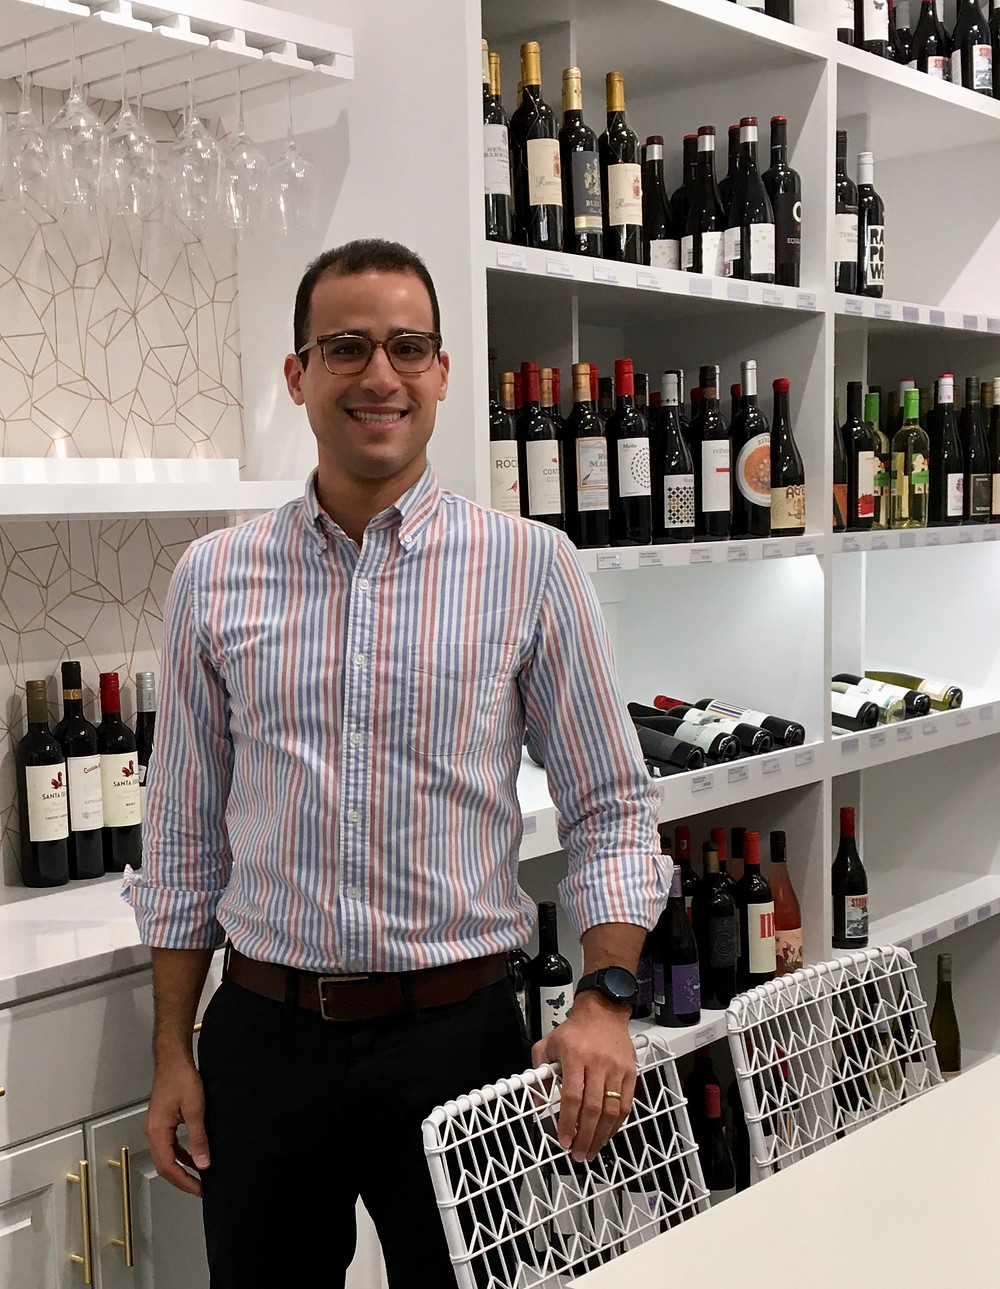 Leonel Arias is the owner of a modern new wine store on Amsterdam Avenue near City College